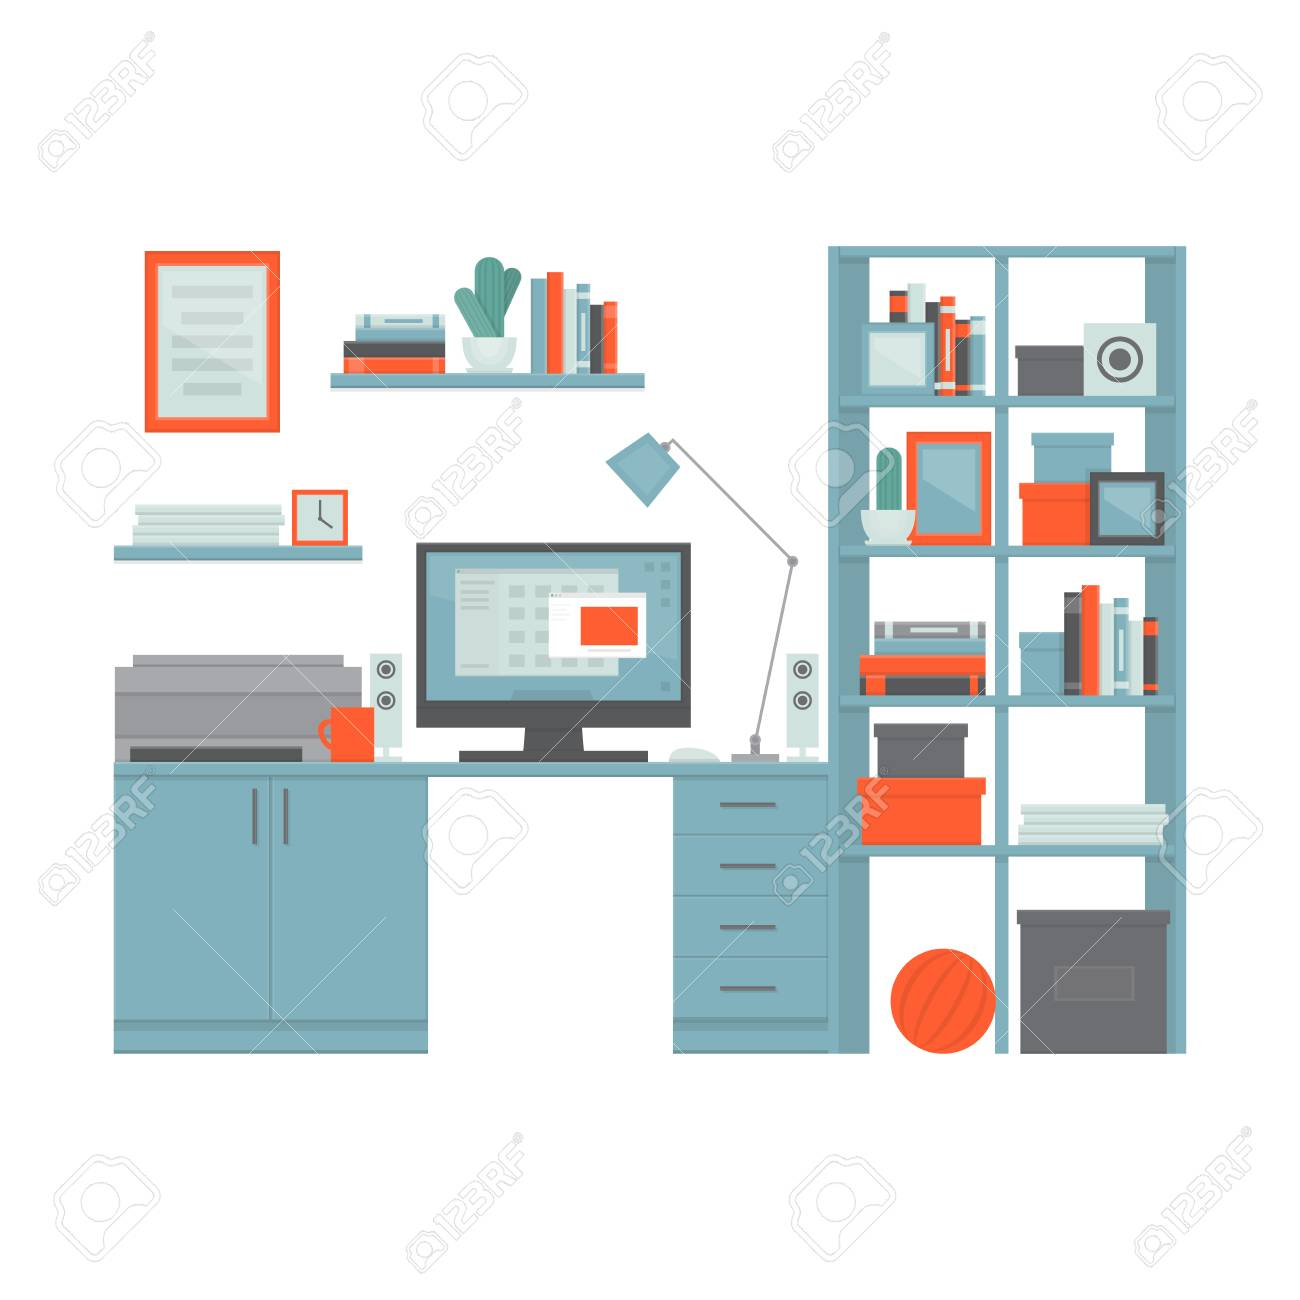 Workplace Freelancer With Desk, Computer, Shelves And Equipment